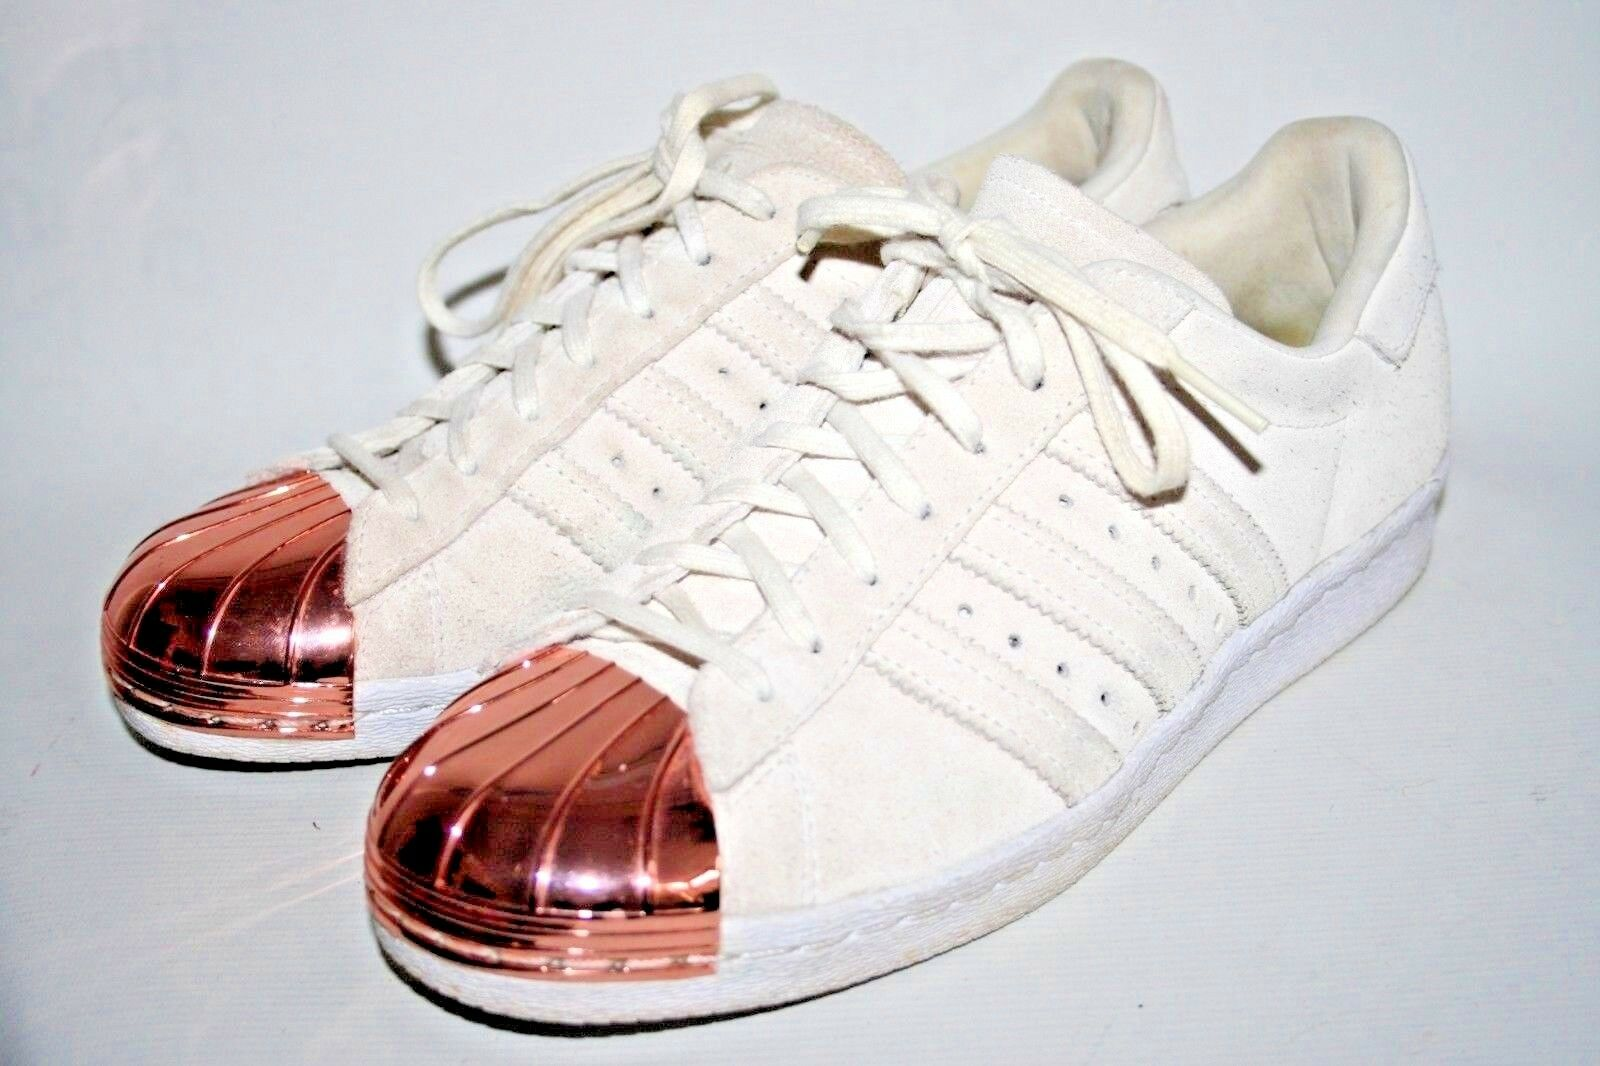 Adidas Originals Steel Toe damen damen damen schuhe Trainers Beige Suede Limited Leather 6UK 20ed35